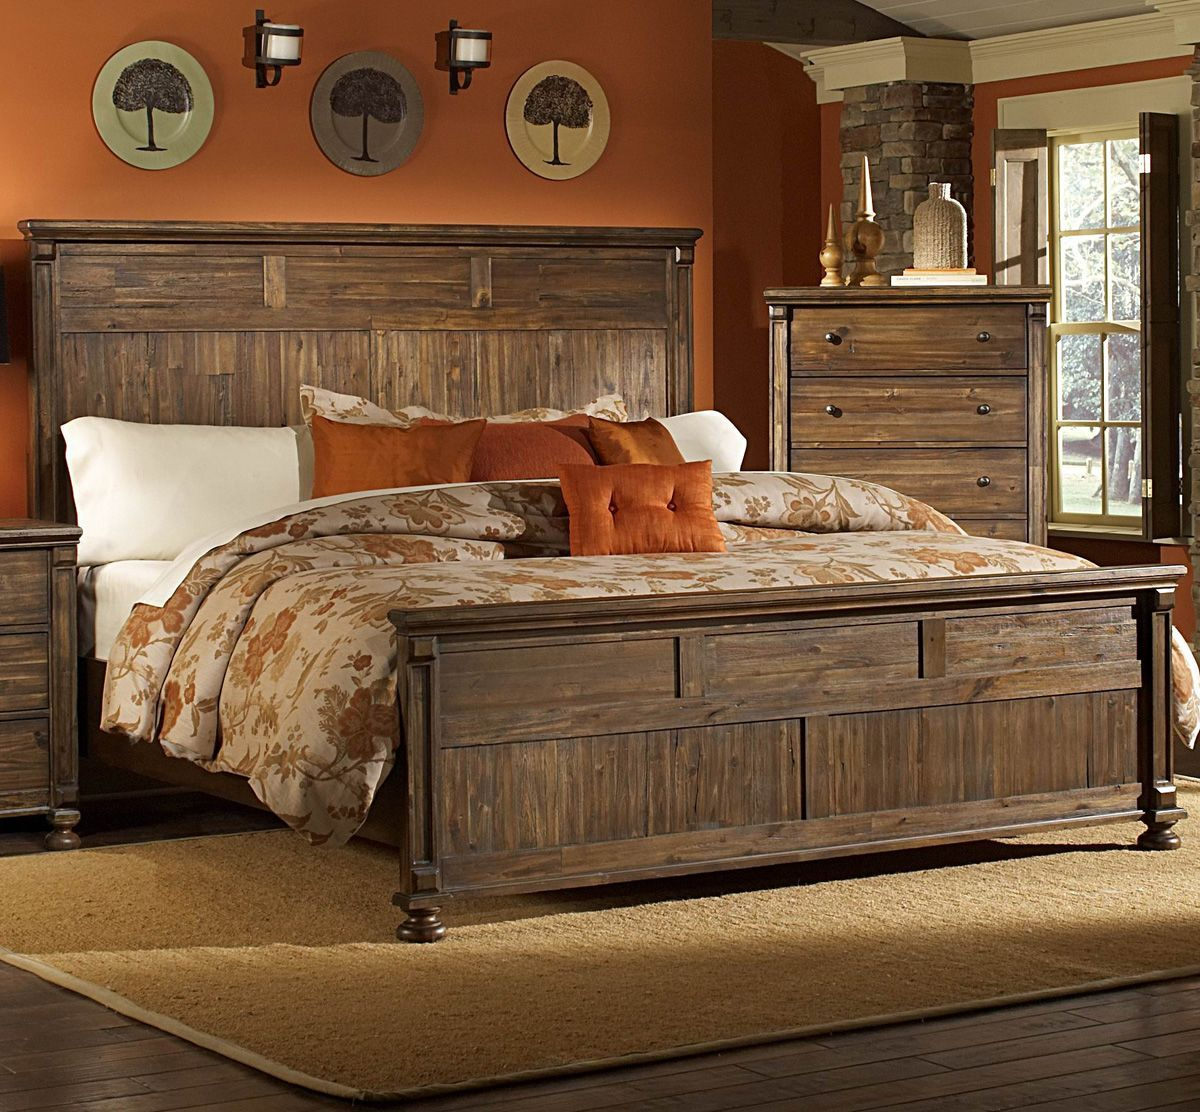 Best 25+ Rustic bedroom furniture sets ideas on Pinterest ...